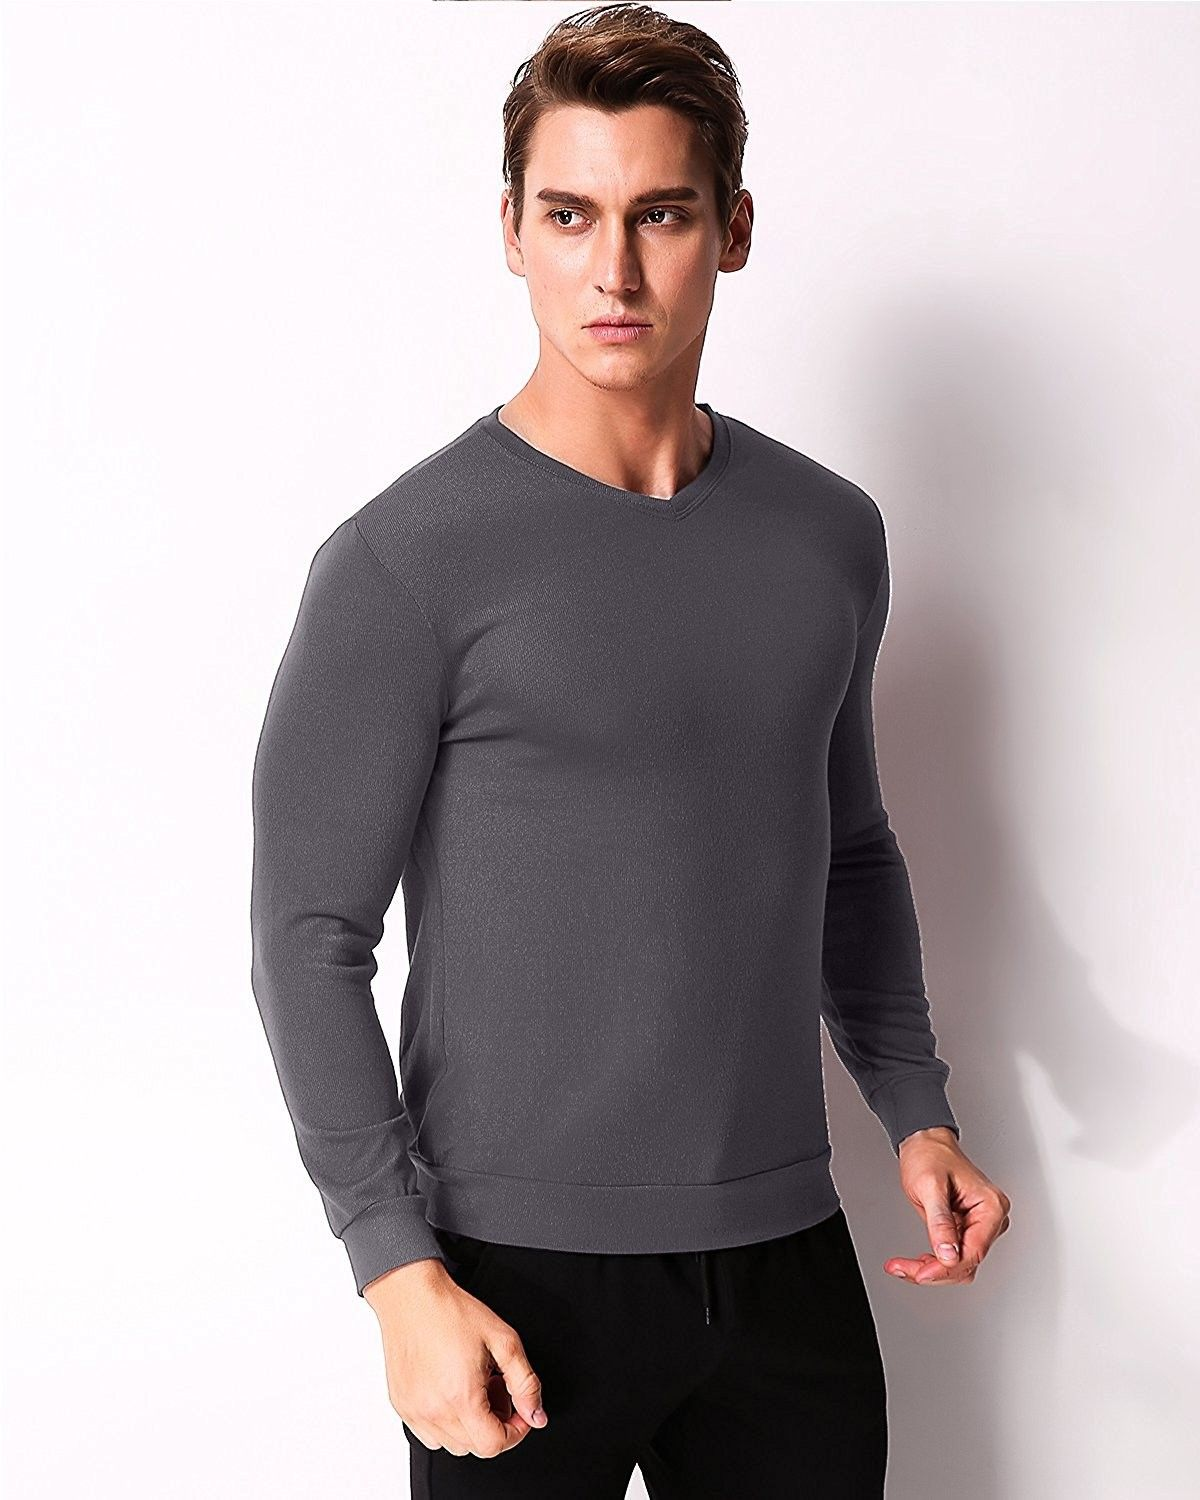 8f0421c36 Men's Clothing, Shirts, Henleys,Men's Long Sleeve V Neck Tee Shirts  Polyester Casual Solid Color Tops - Dark Gray - CY17YH9DULR #Fashion #Shirts  #men ...